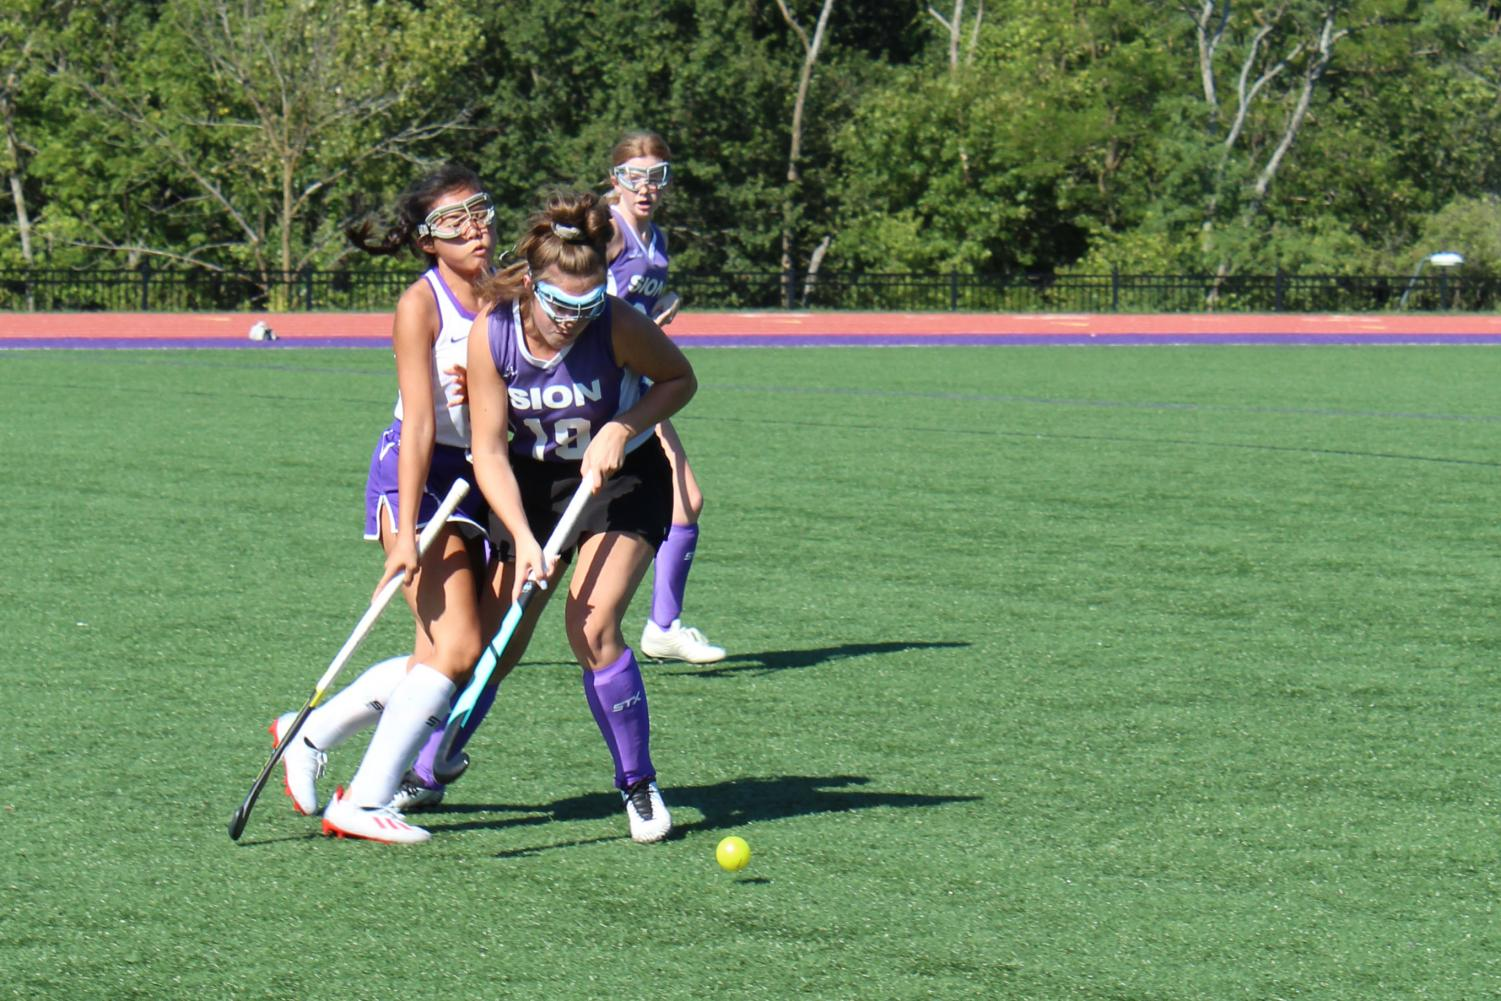 Junior+Lia+Concannon+and+sophomore+Isabella+Wilson+collide+in+a+fierce+1-on-1+for+the+ball.